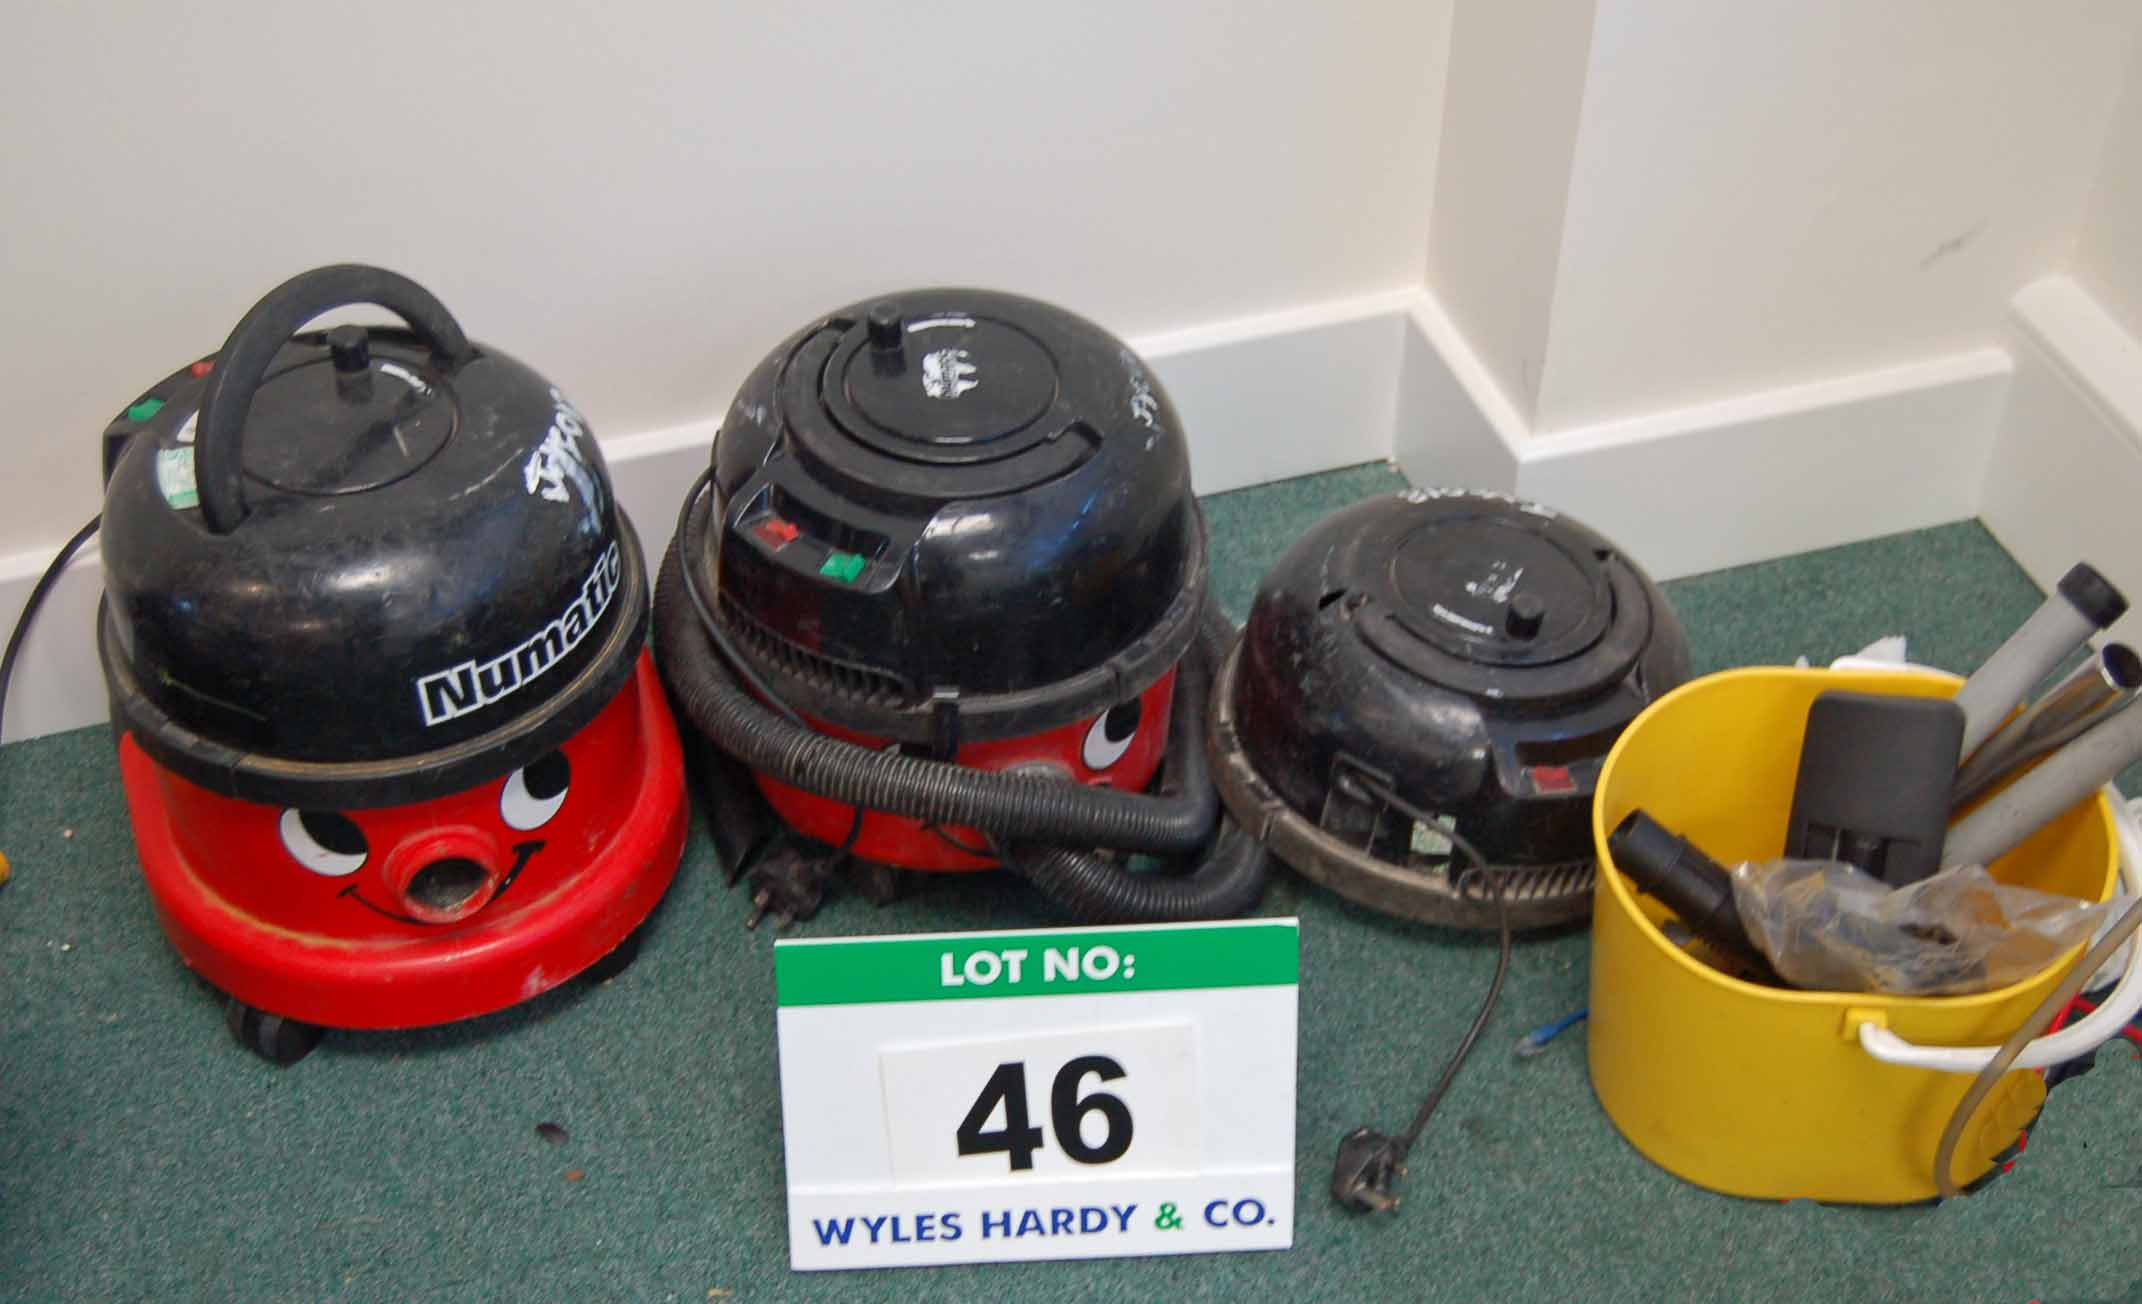 Lot 46 - A Quantity of NUMATIC Henry Vacuum Cleaner Used Spare Parts and Accessories (As Photographed)